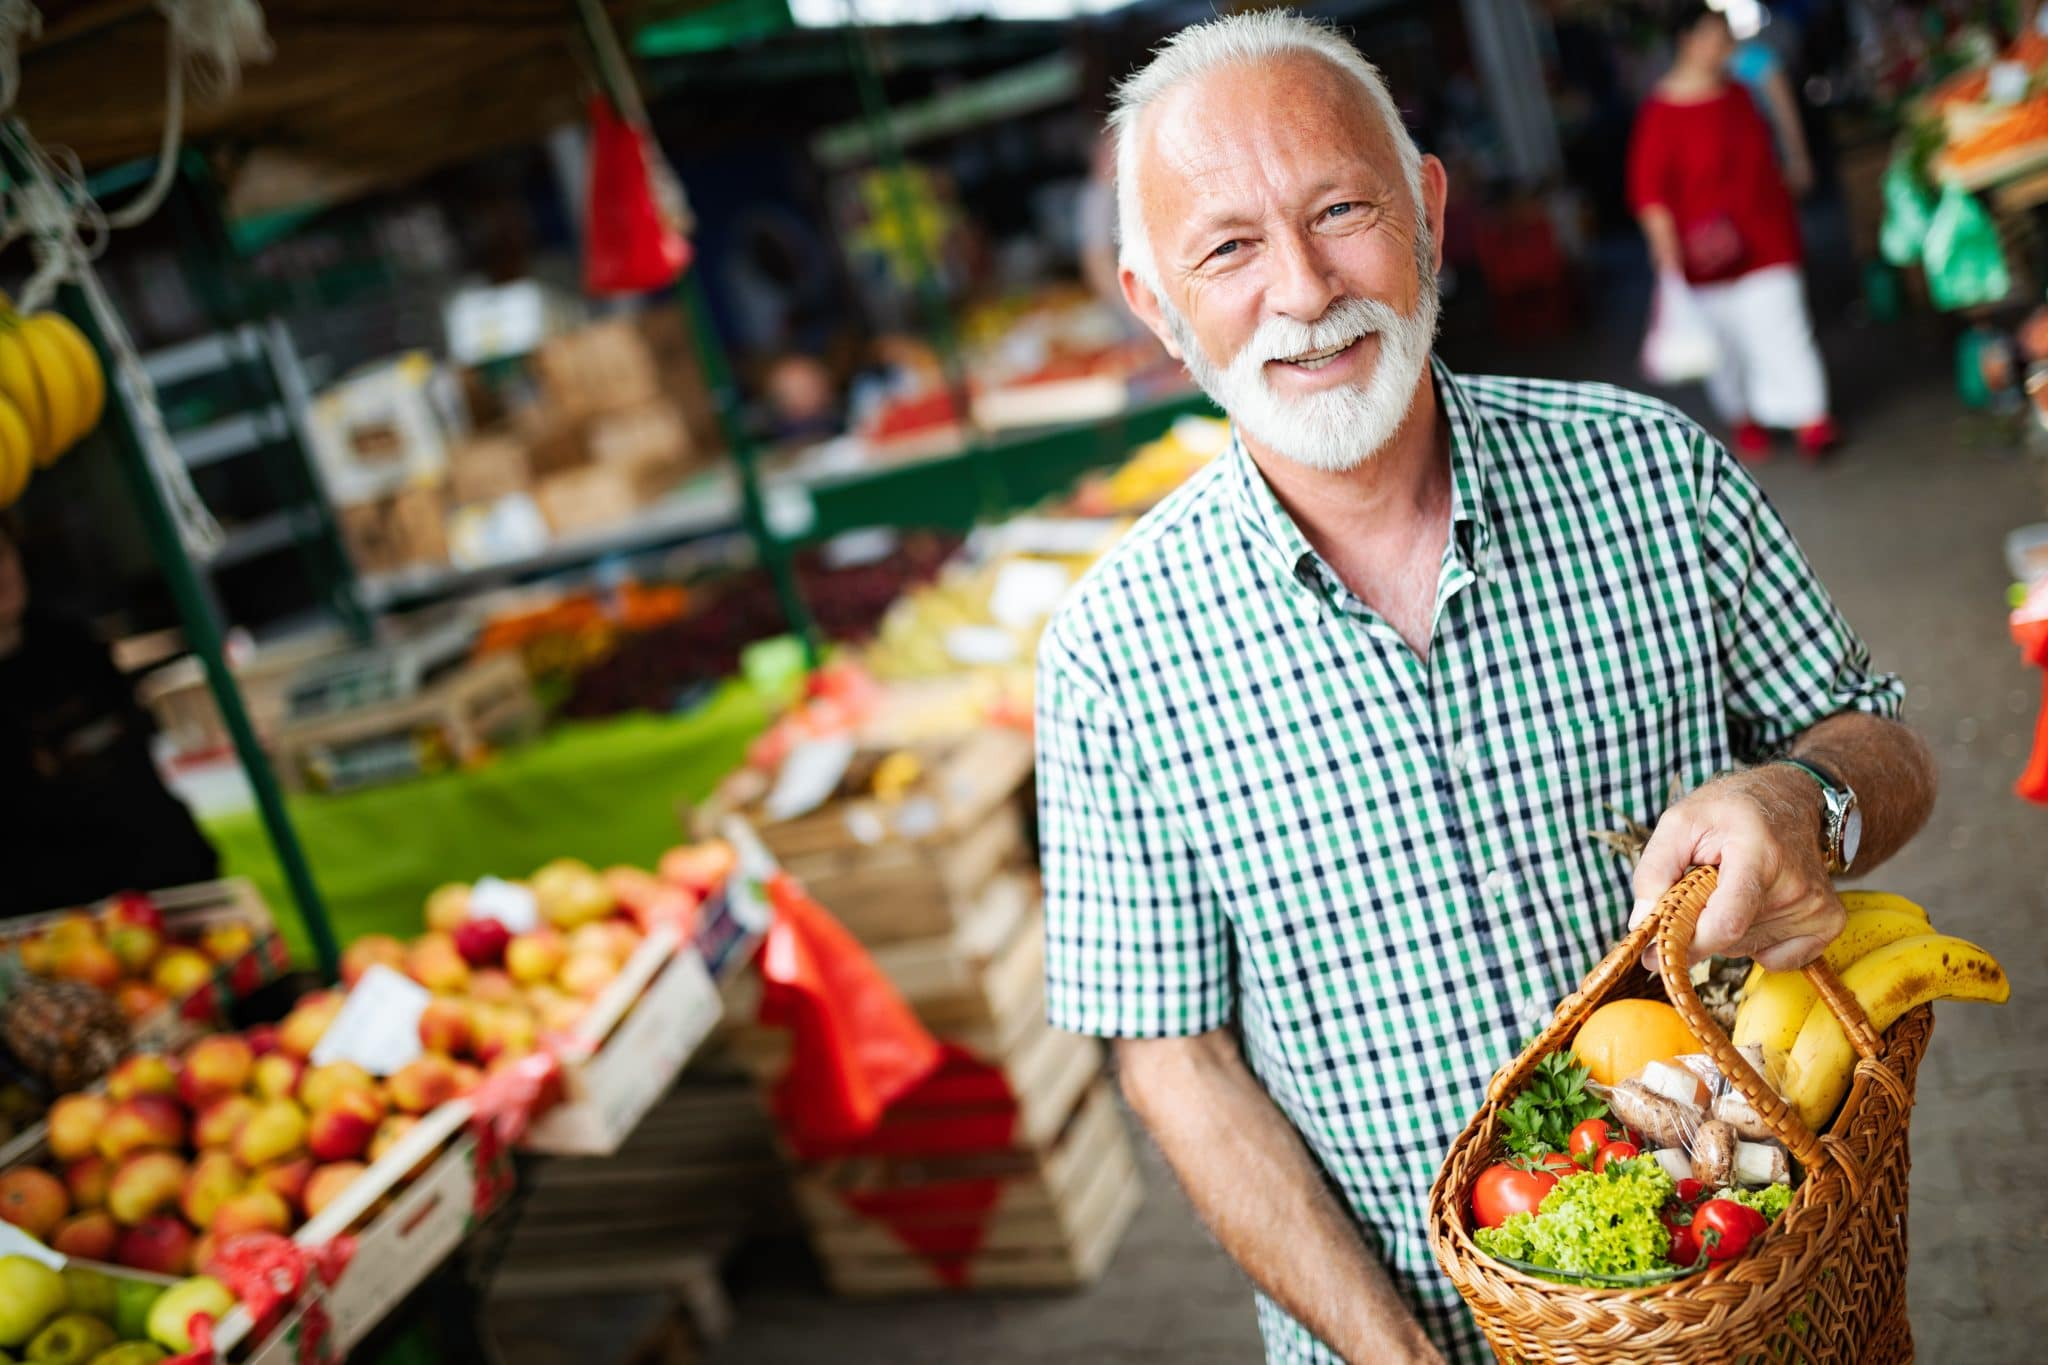 senior man smiling and holding basket of fresh produce while shopping at a market